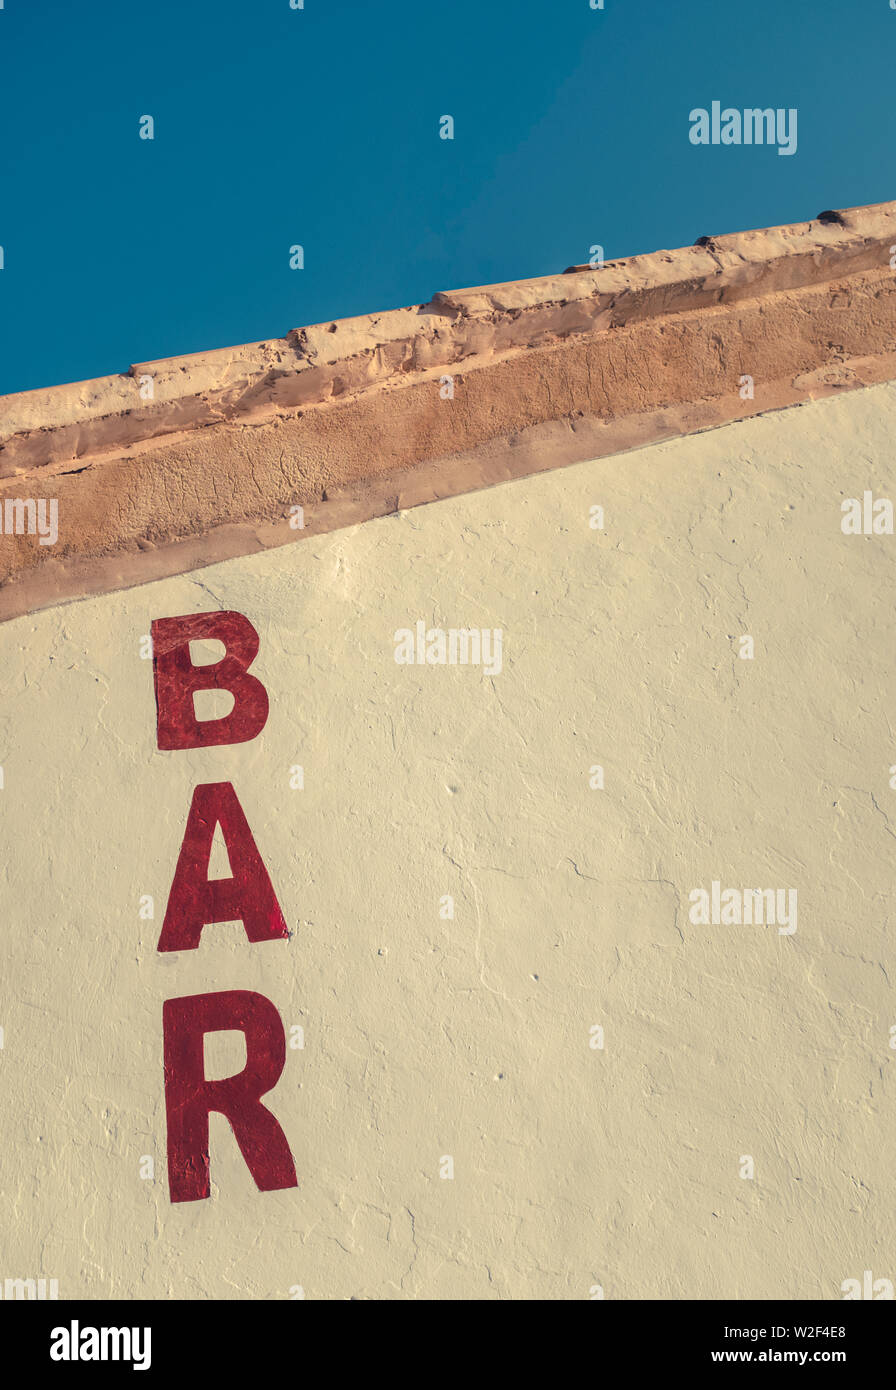 A Rustic Sign For A Bar In The American Southwest With Copy Space Stock Photo